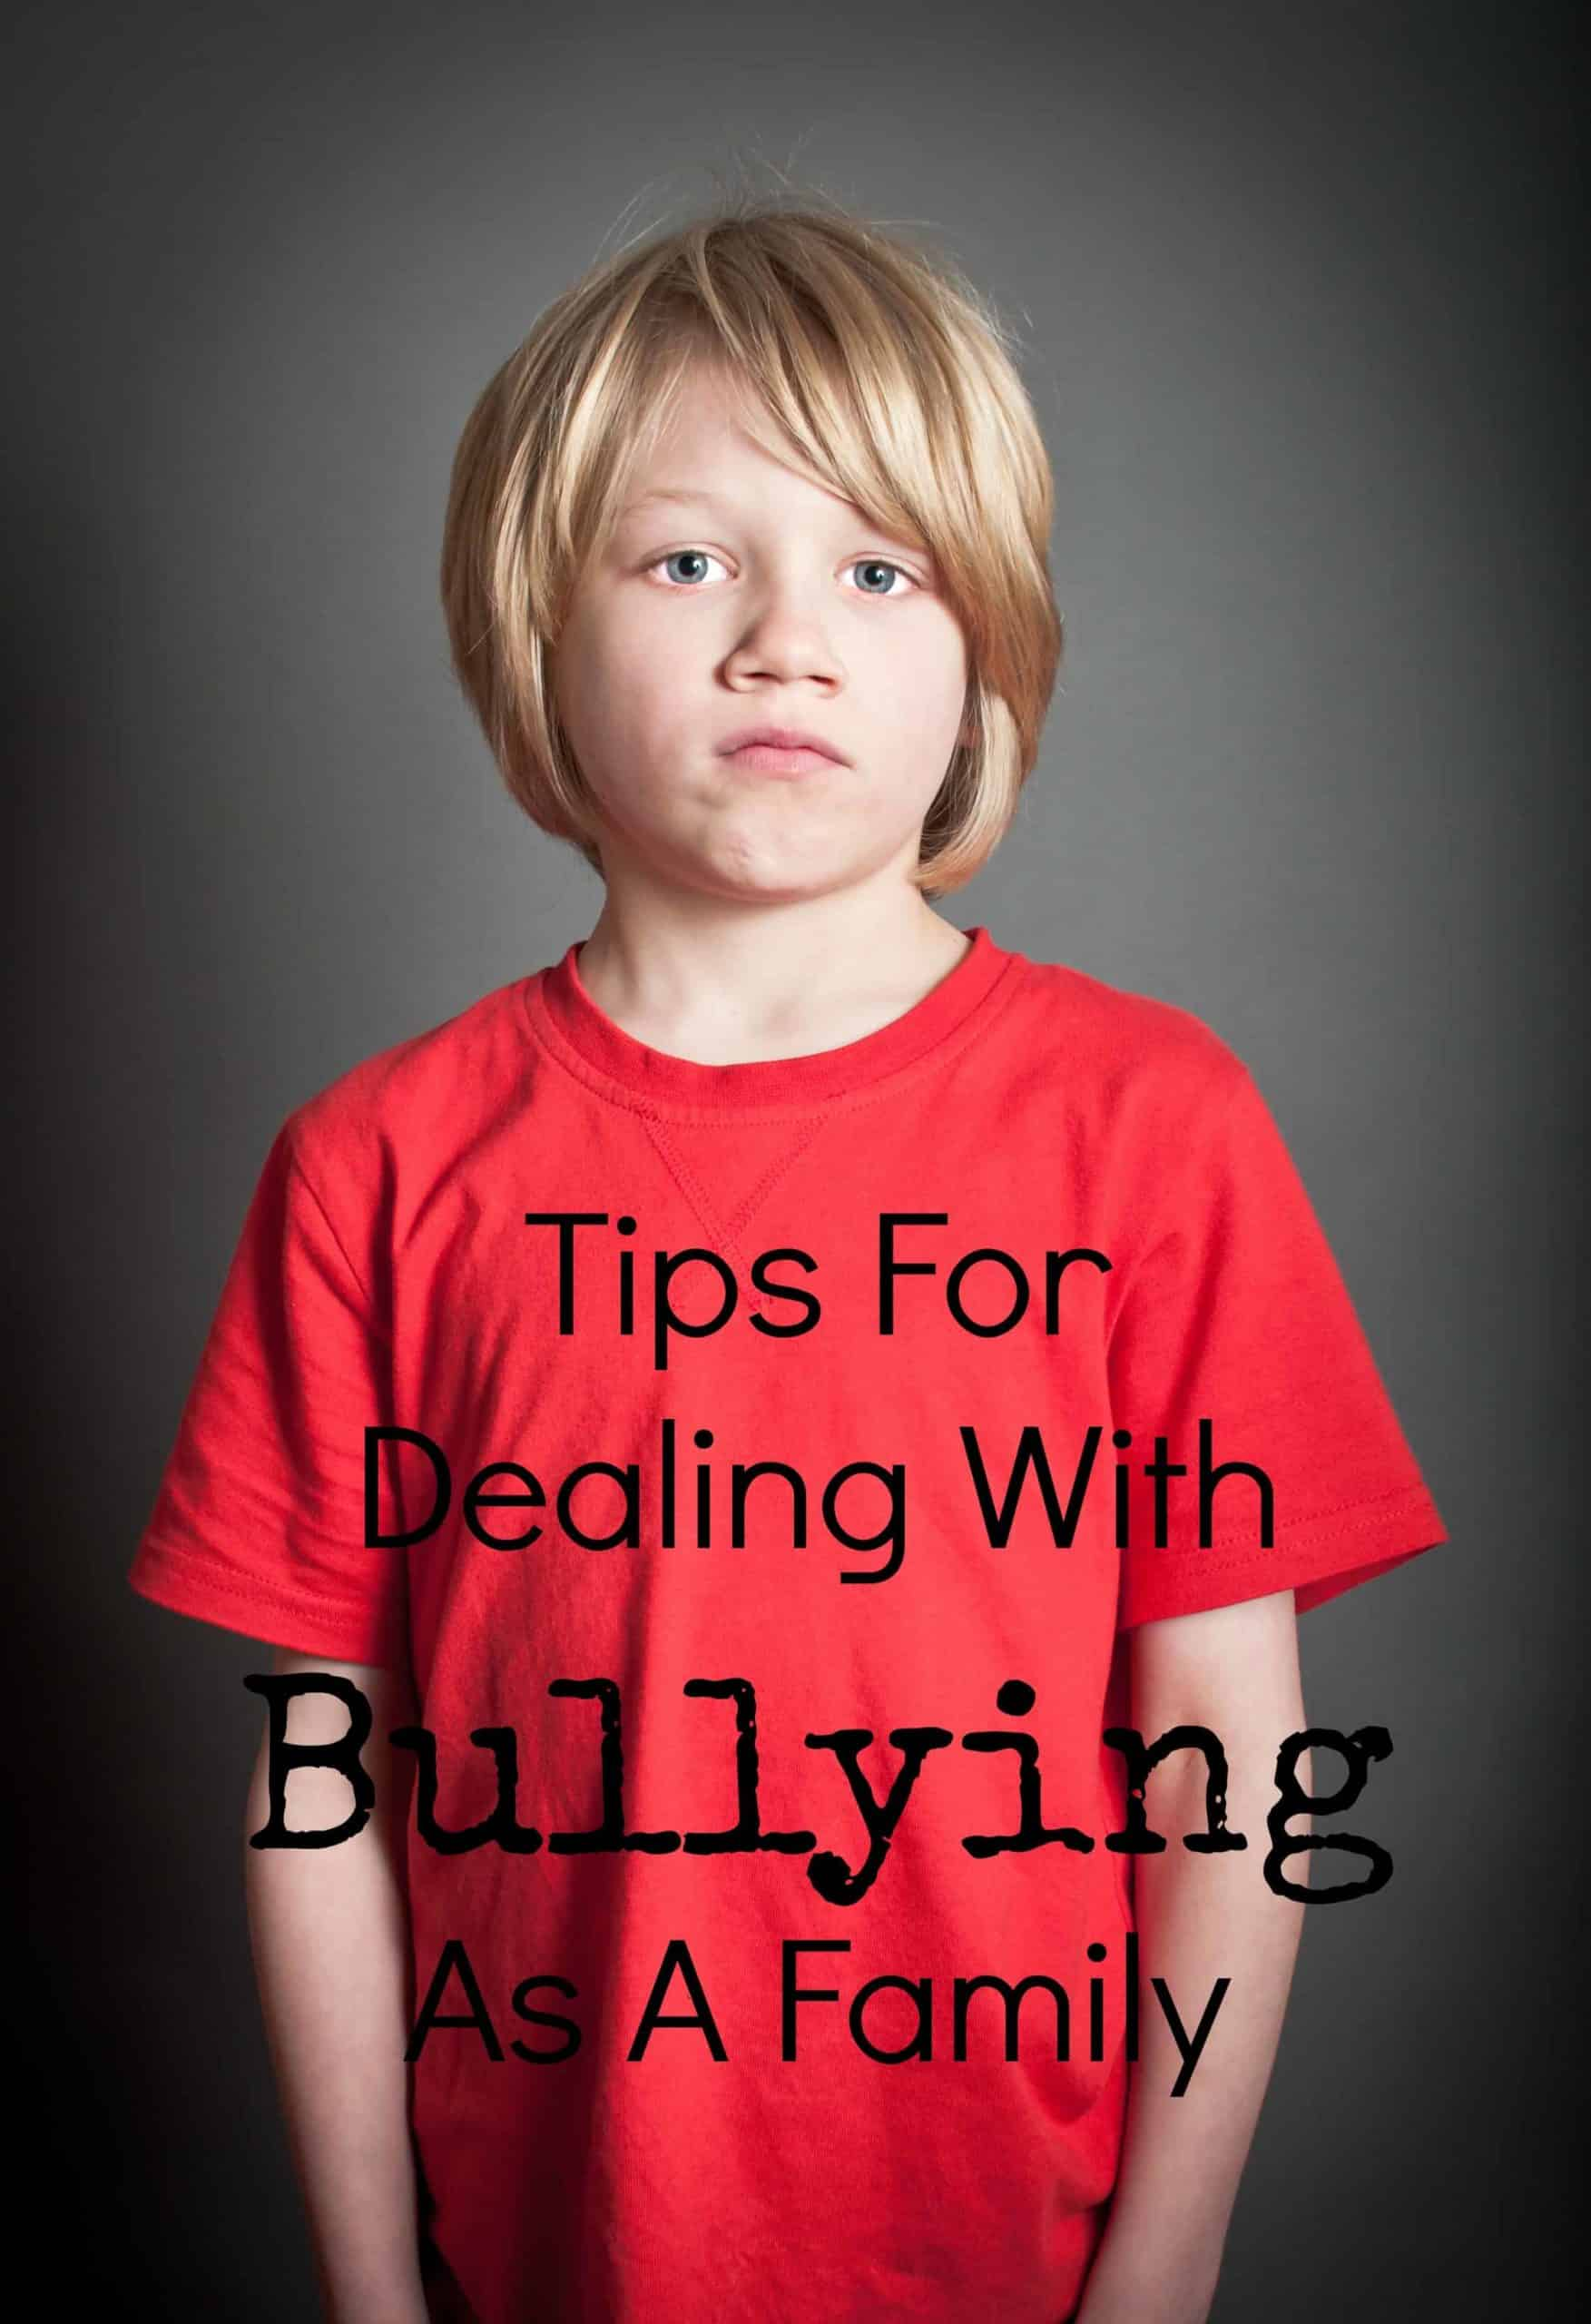 When your child is bullied, he needs everyone to rally around to get him through this time. Check out our tips for dealing with bullying as a family.